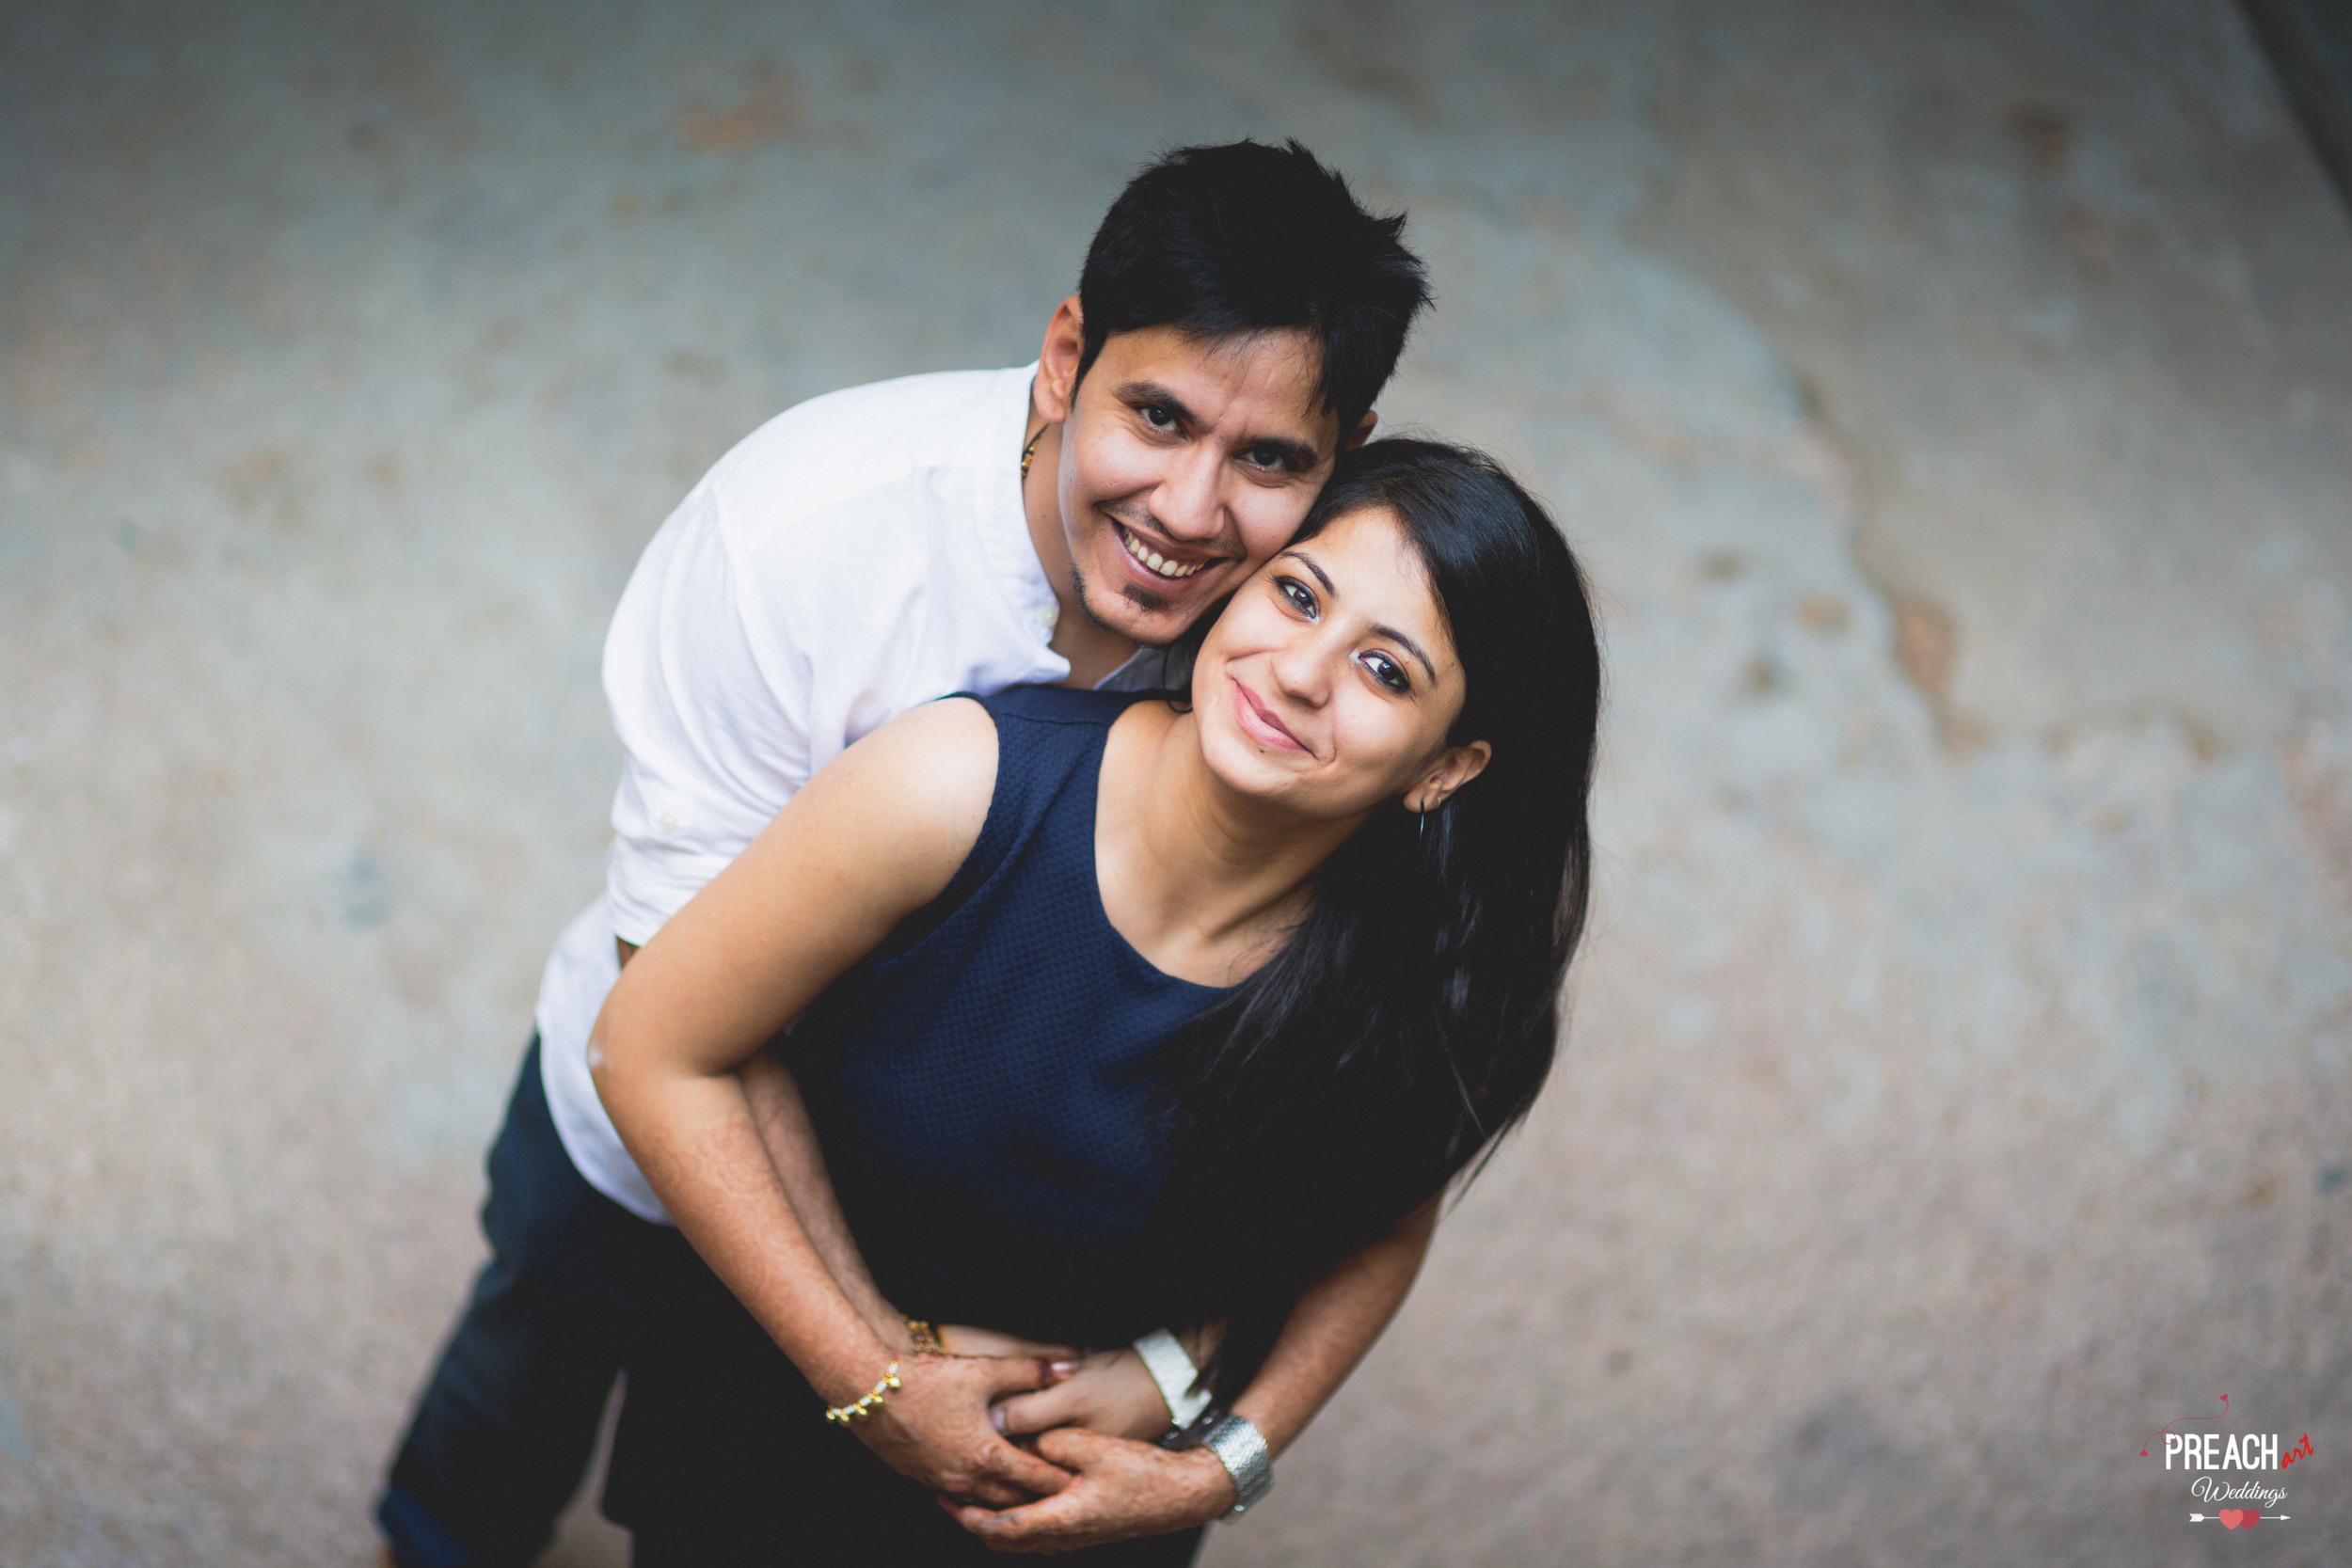 V&M_PRE-WEDDING SHOOT_AHMEDABAD OLD CITY_PREACH ART-29.jpg